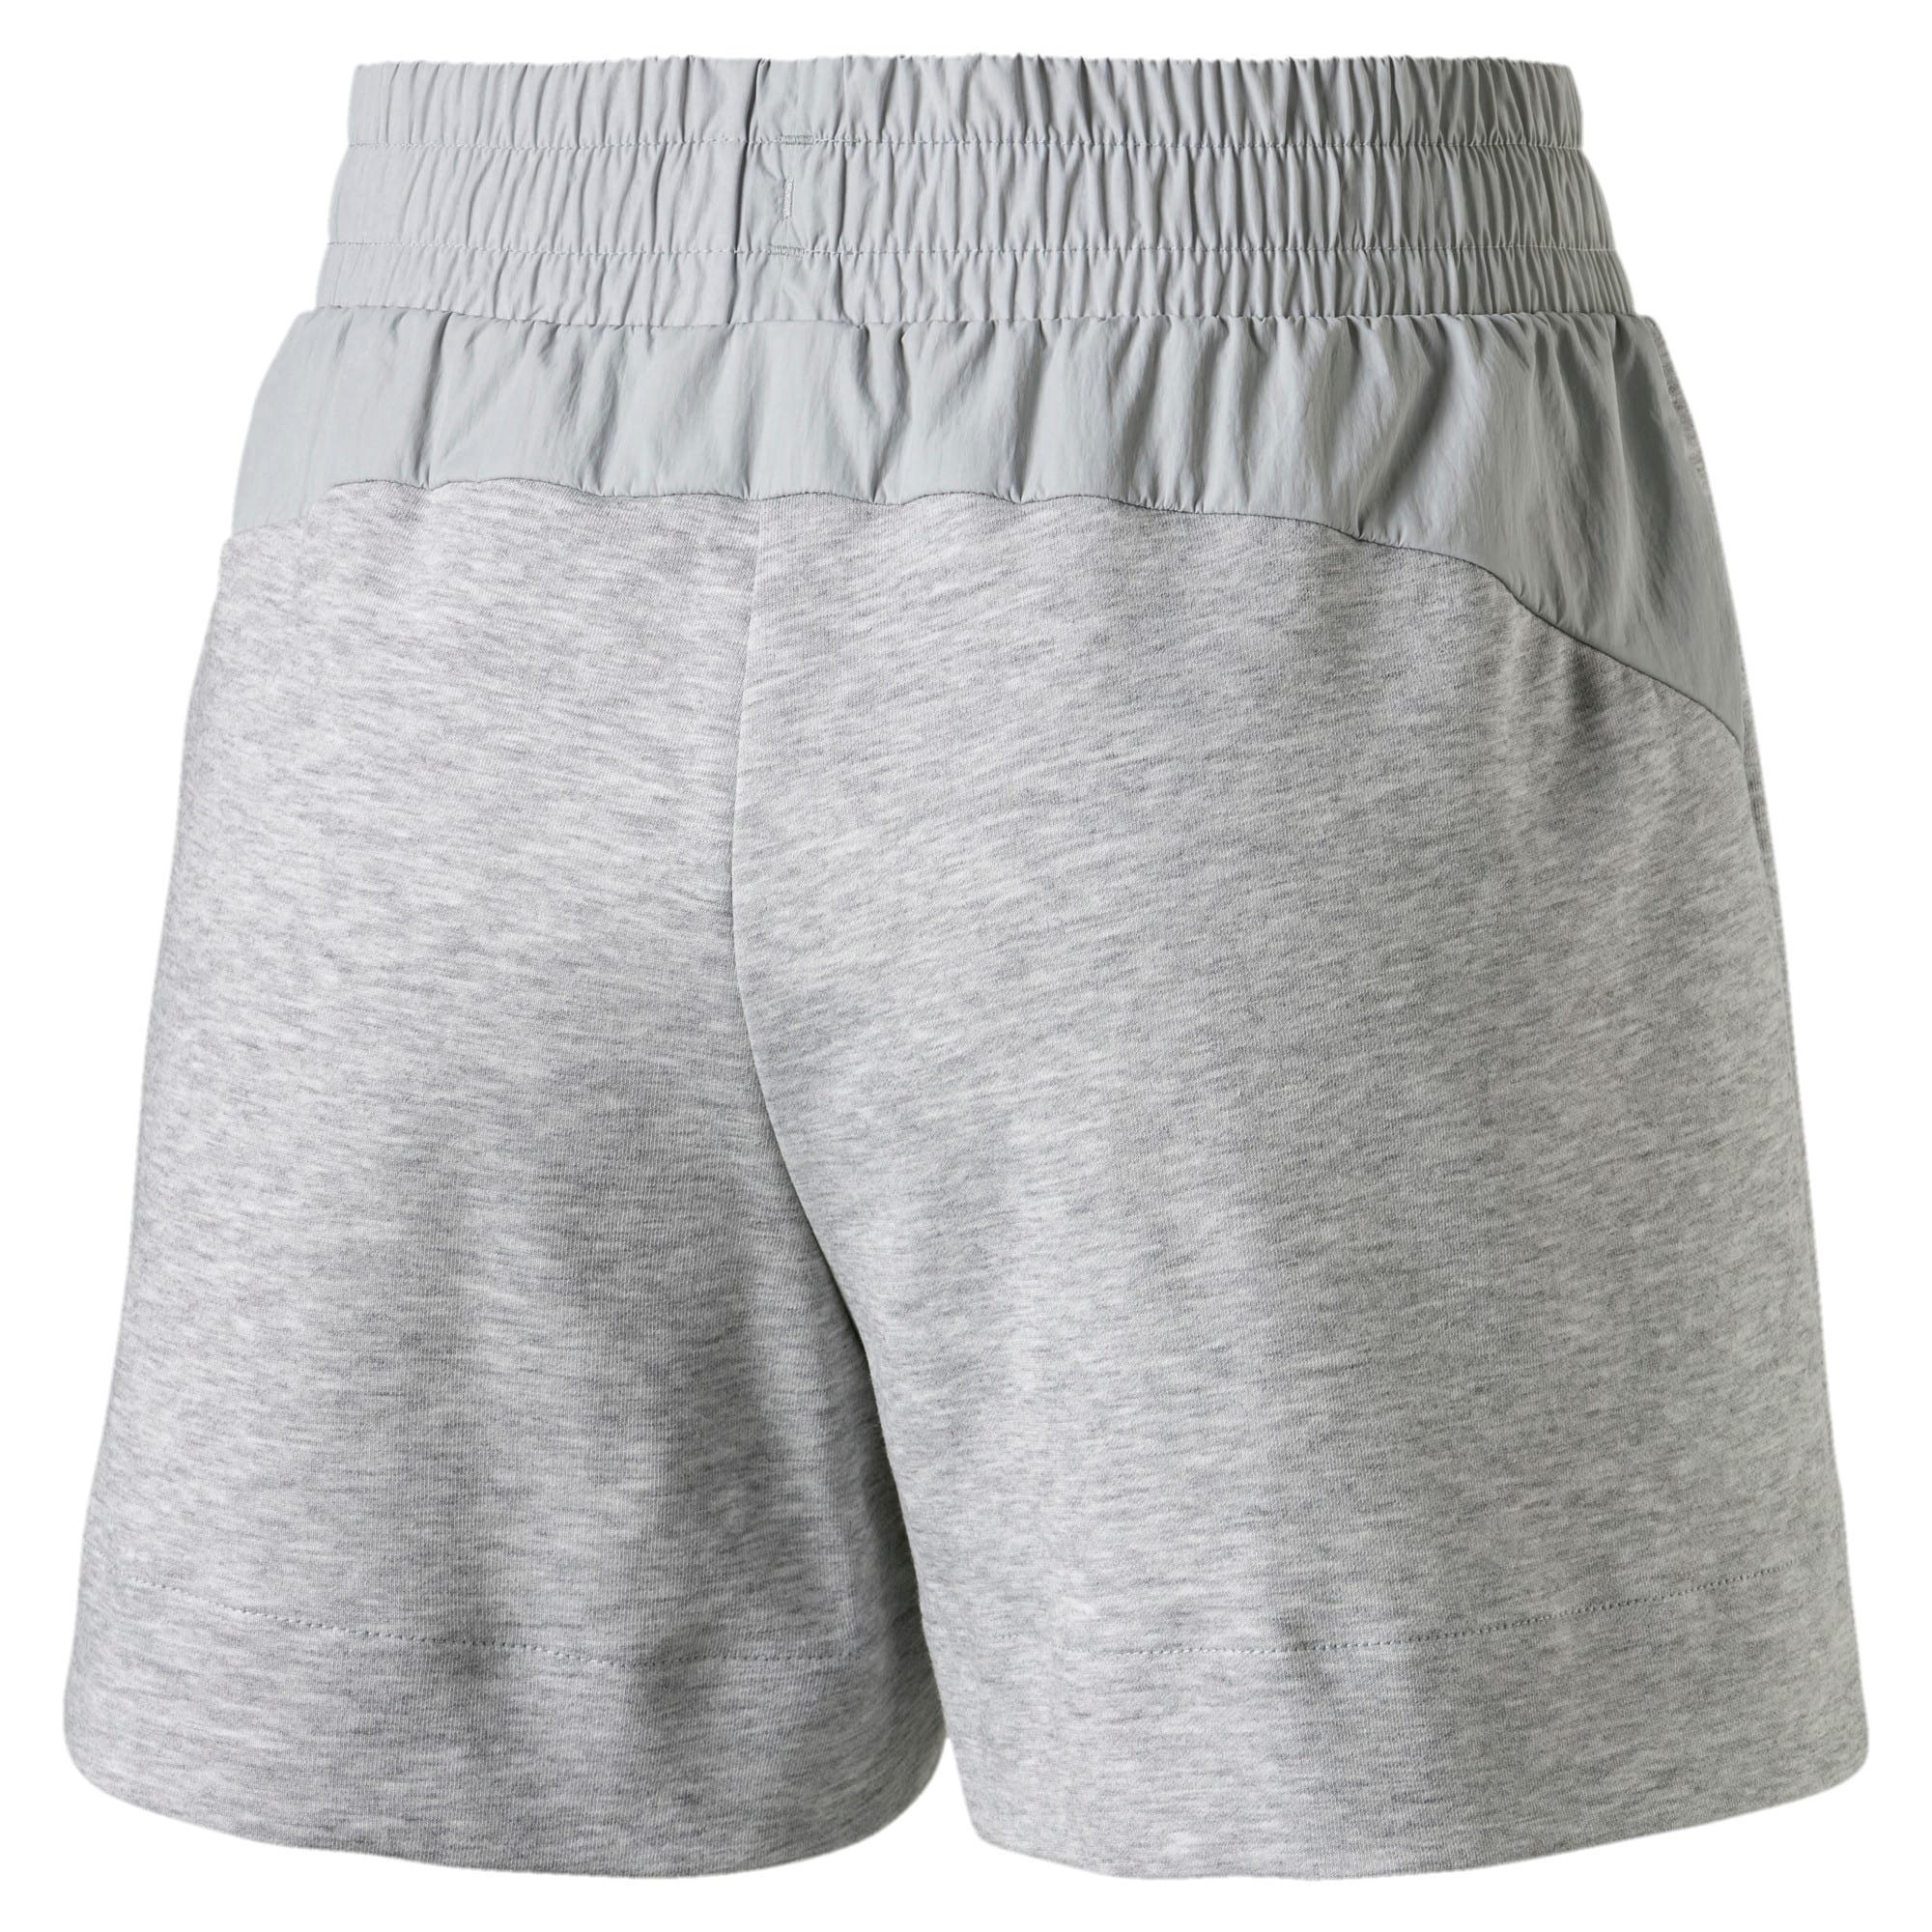 Thumbnail 5 of Evostripe Lite Women's Shorts, Light Gray Heather, medium